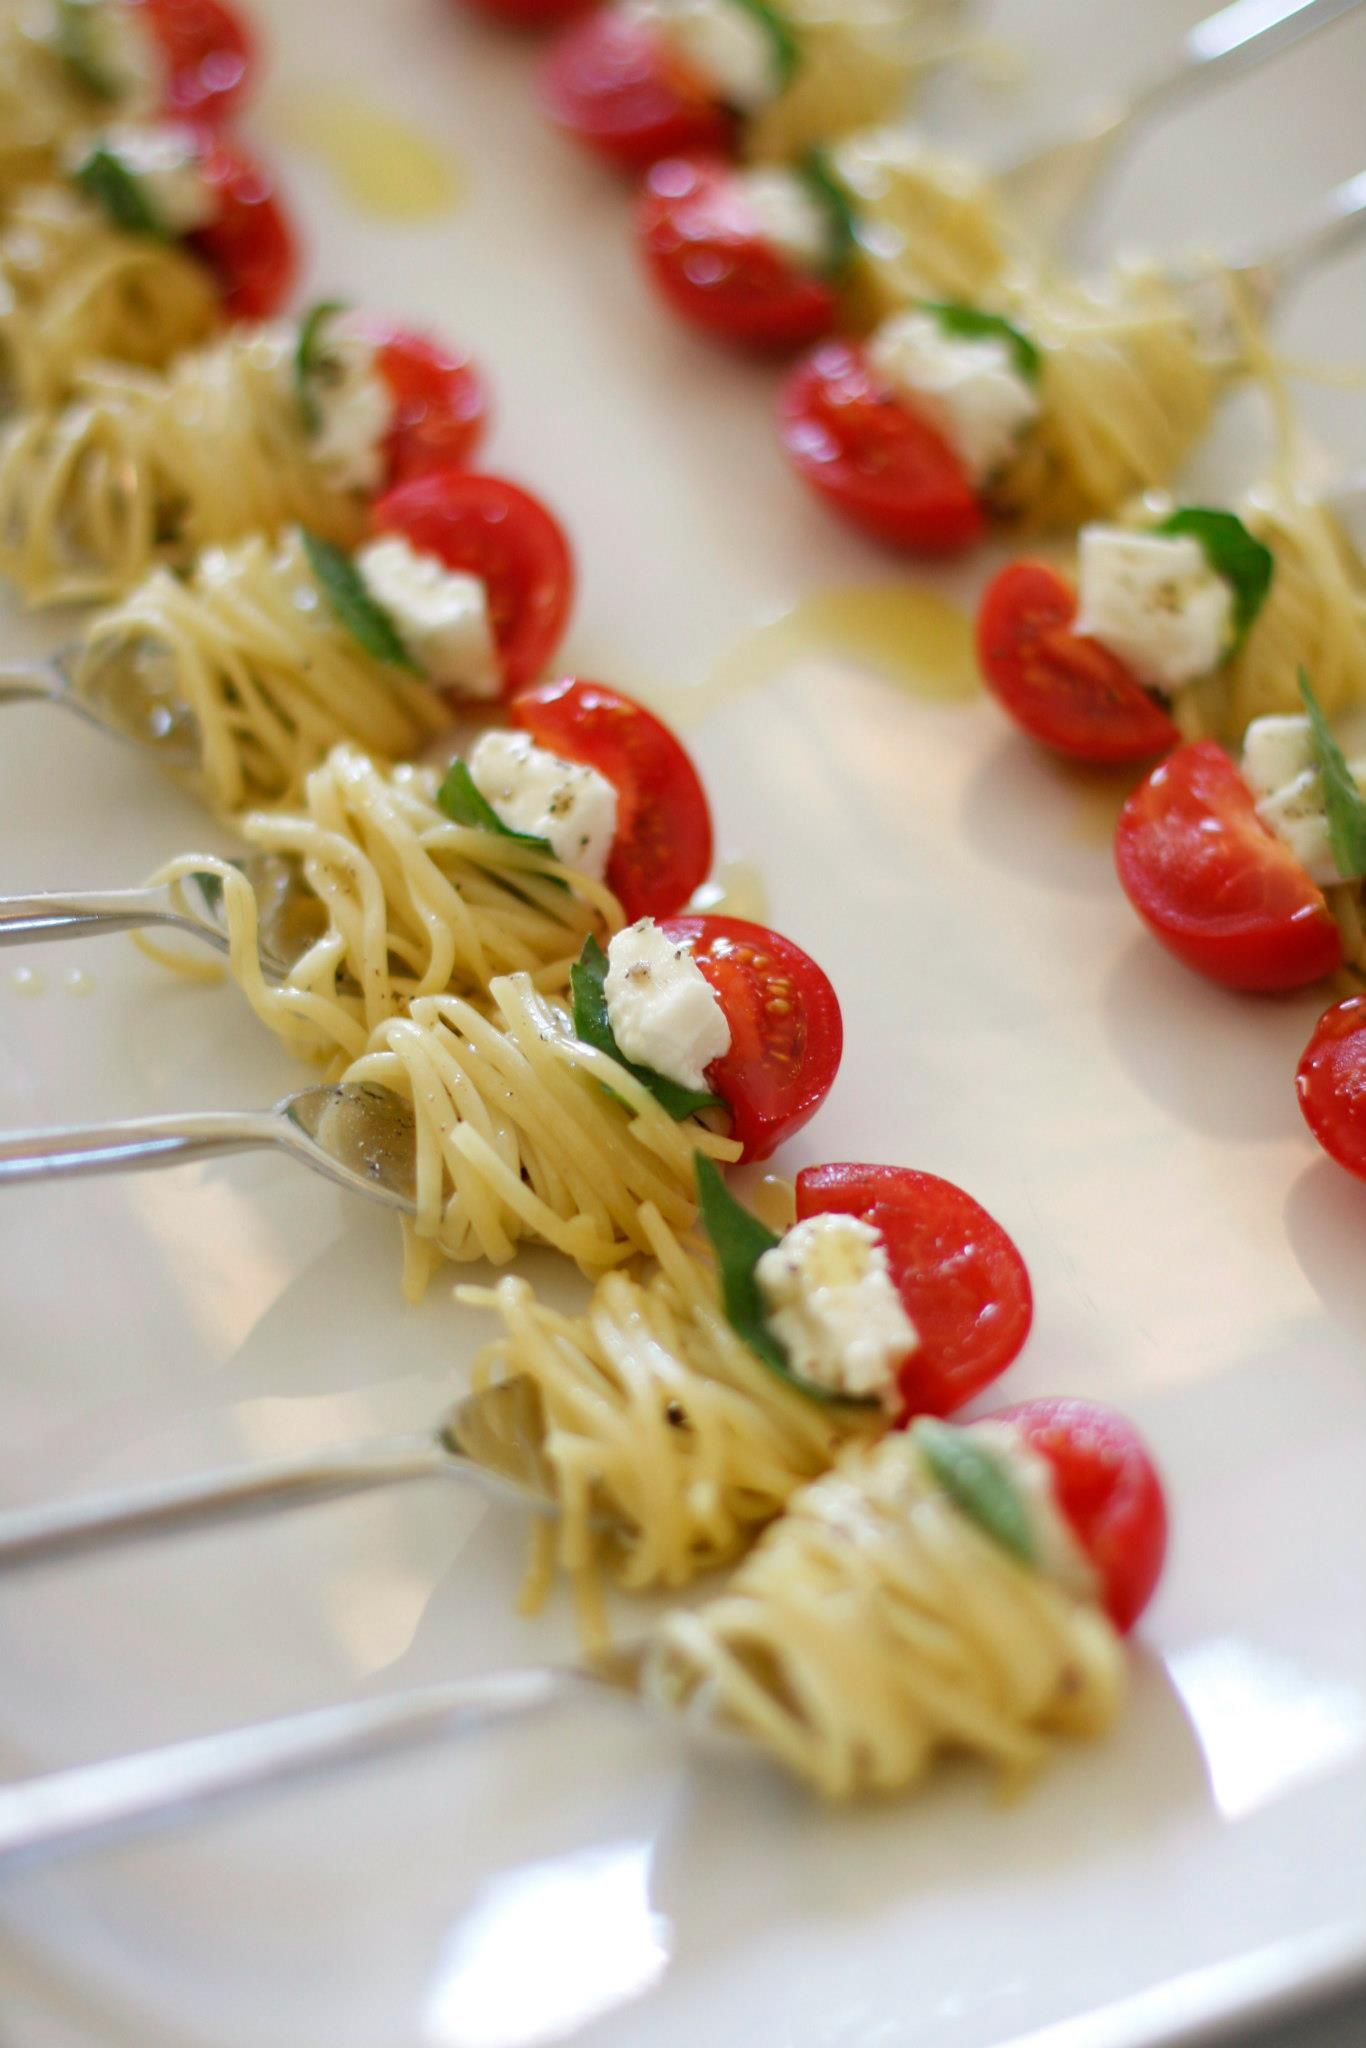 Appetizers Ideas For Dinner Party Part - 42: What An Awesome Idea For Small Dinner Party! Perfect Bite Of Pasta.